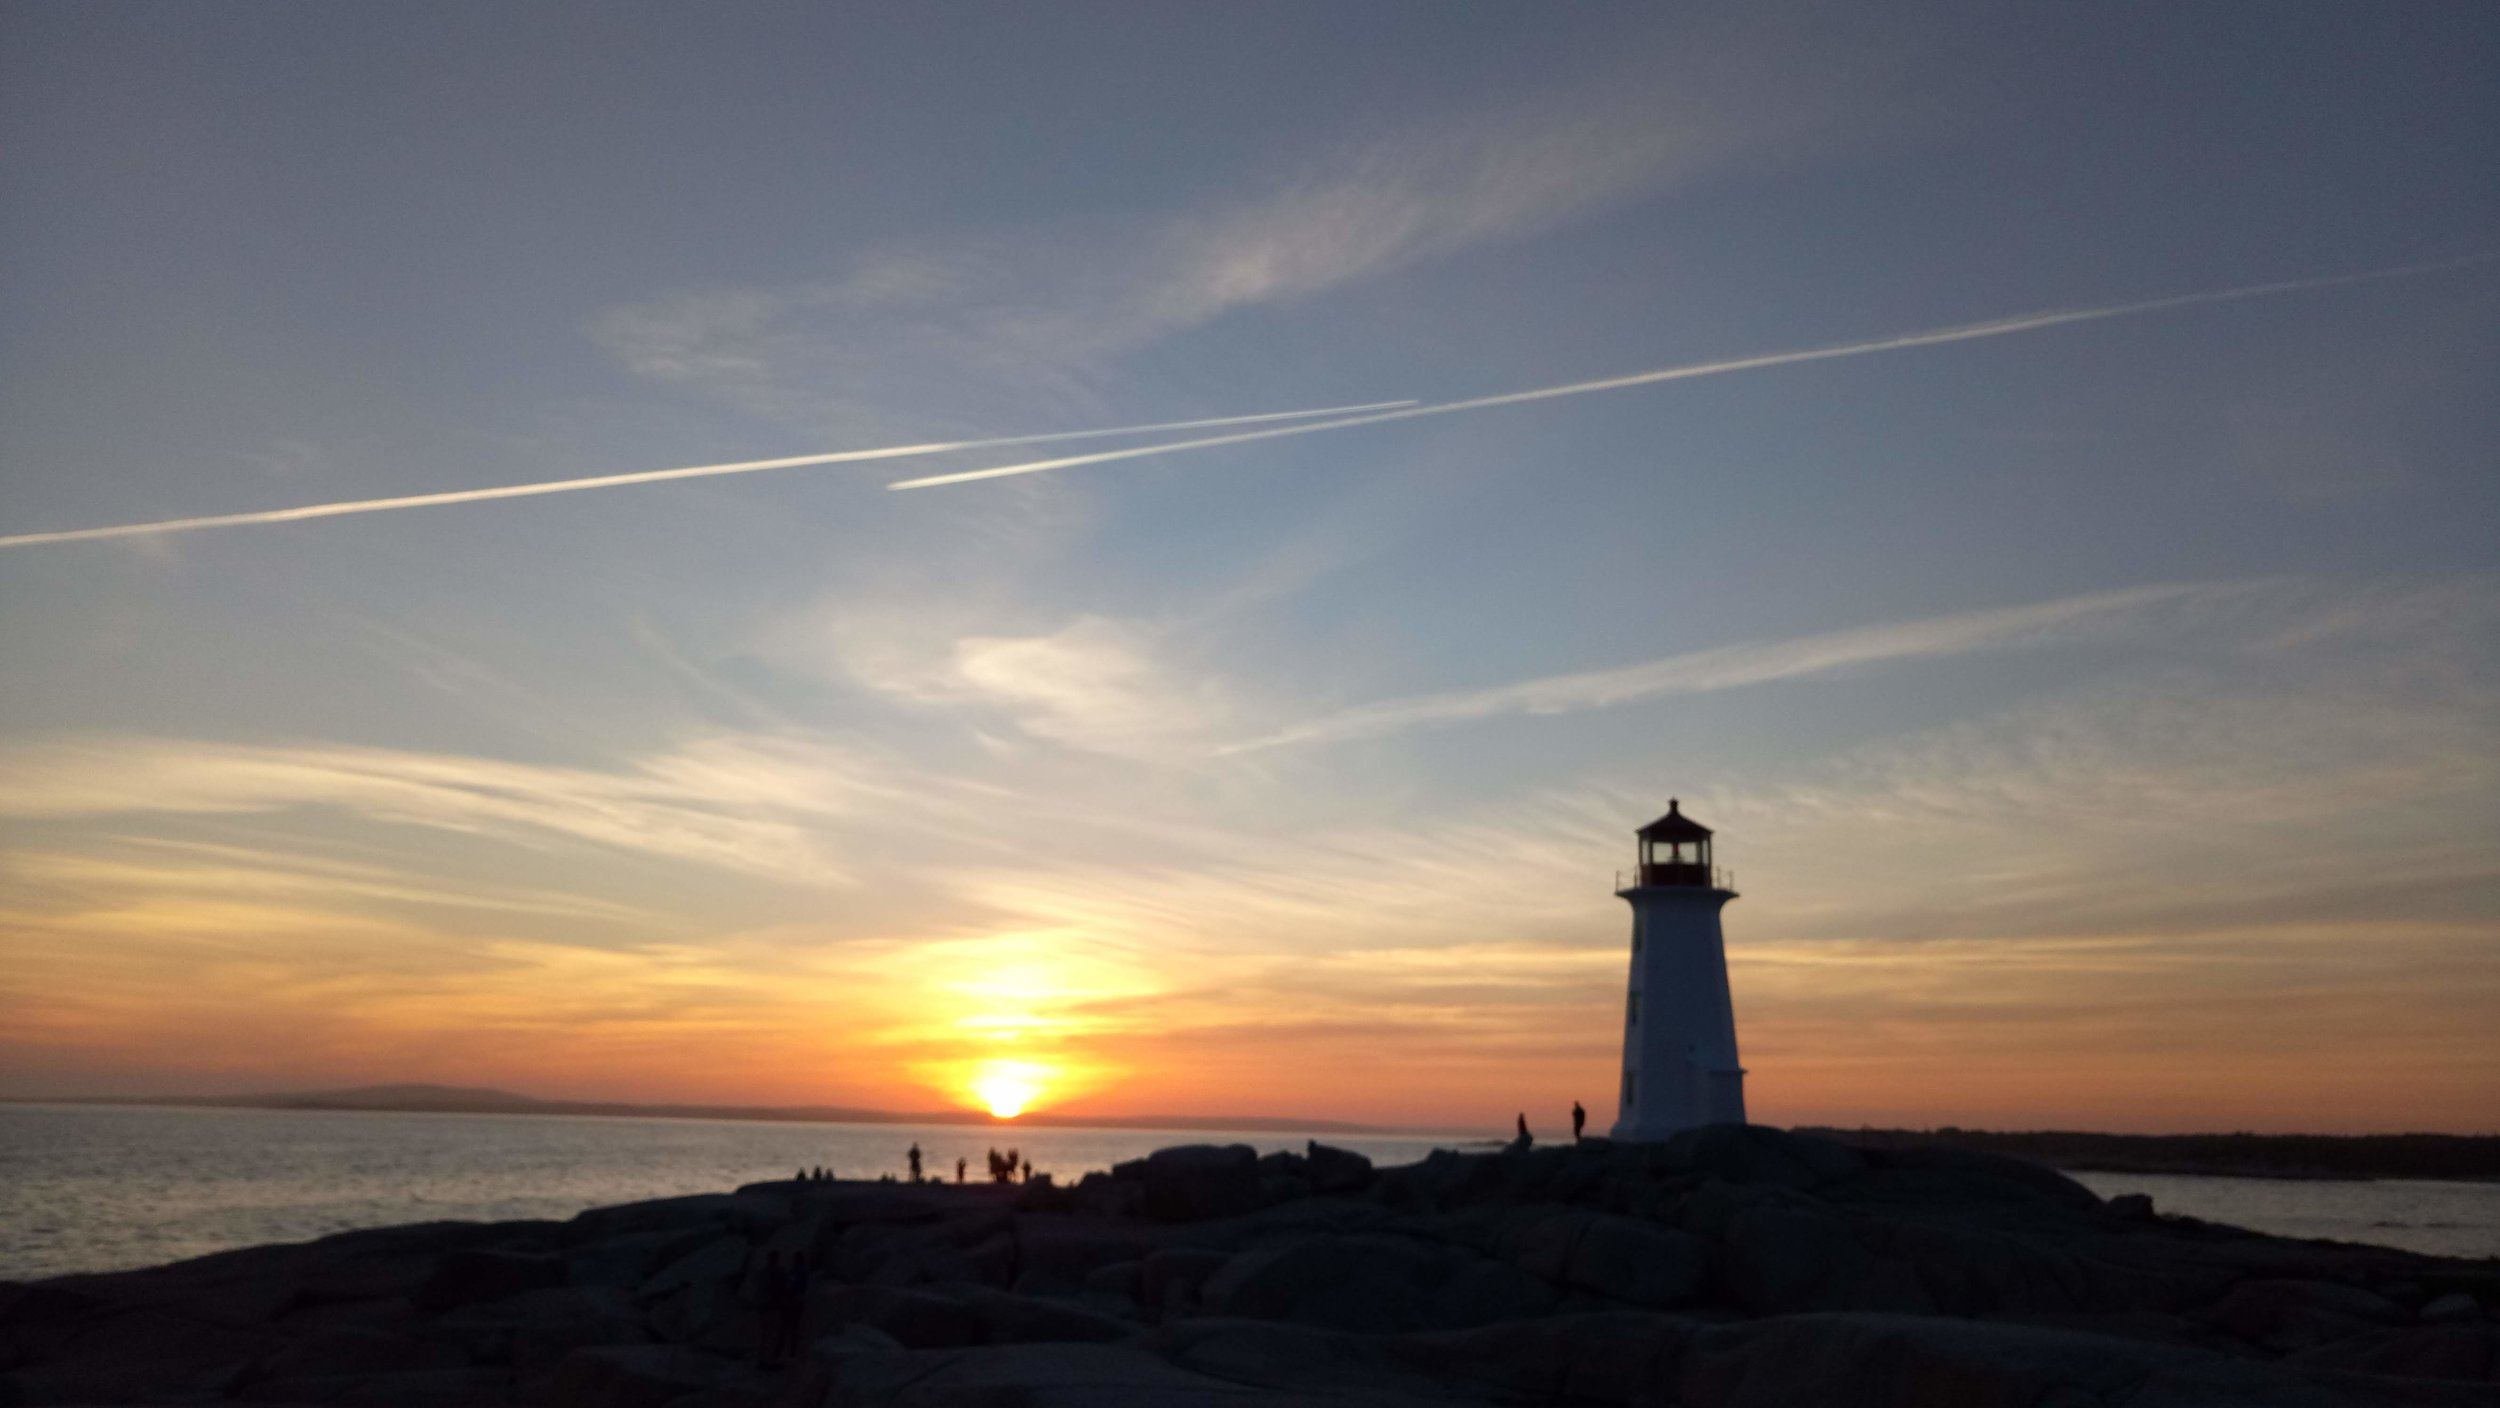 I highly recommend visiting Peggy's Cove to watch the sunset.